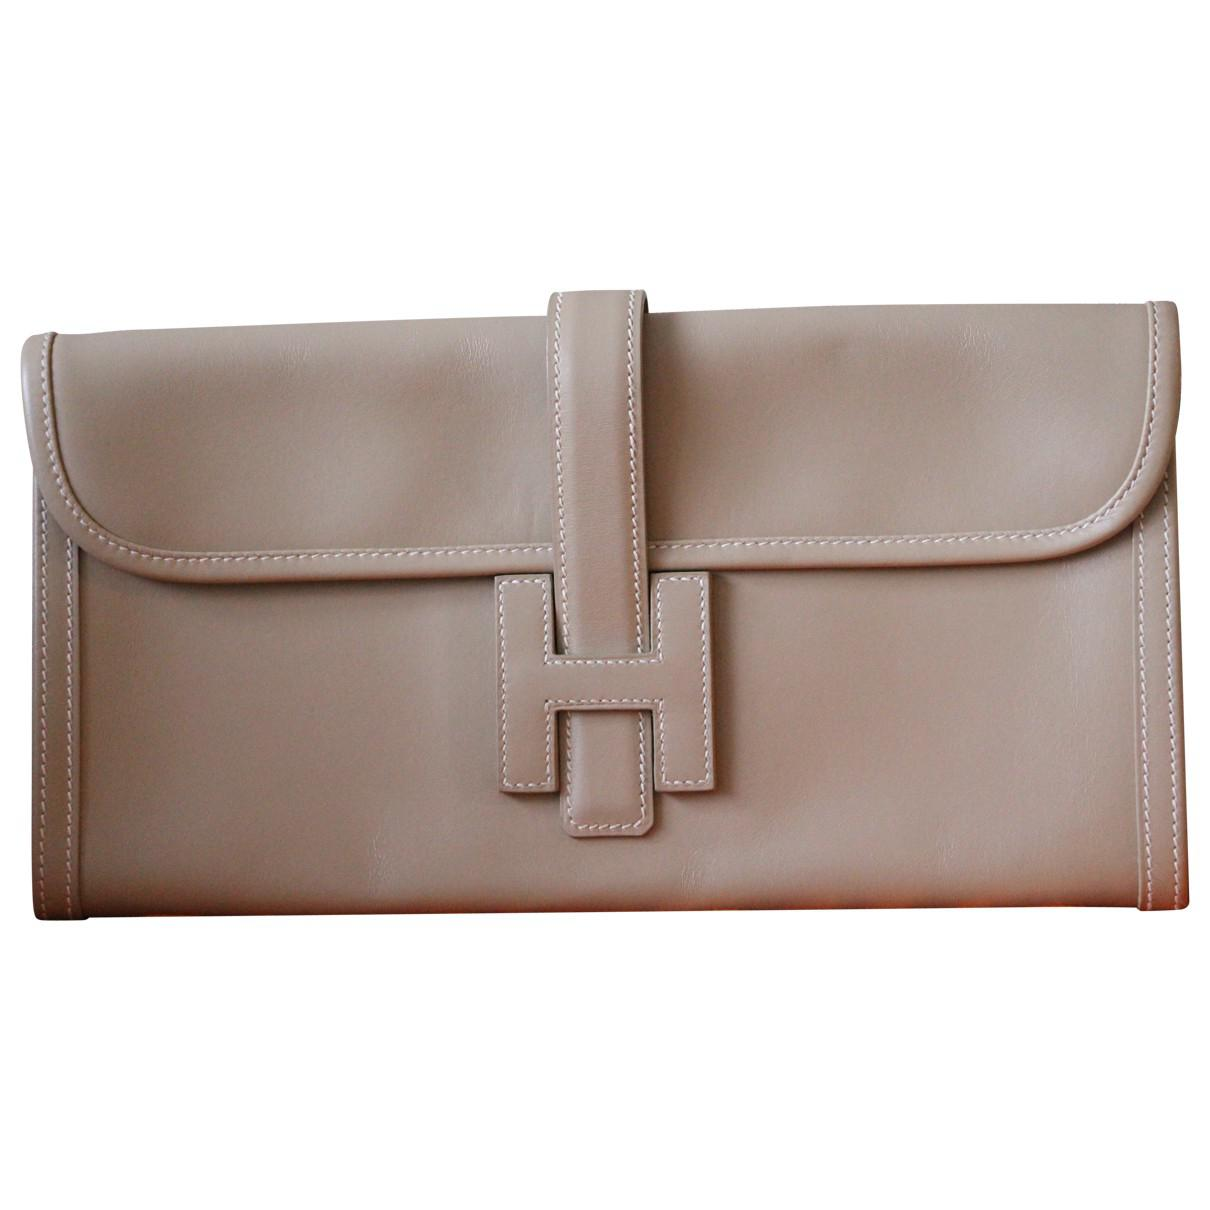 Hermès Pre-owned - Leather clutch bag